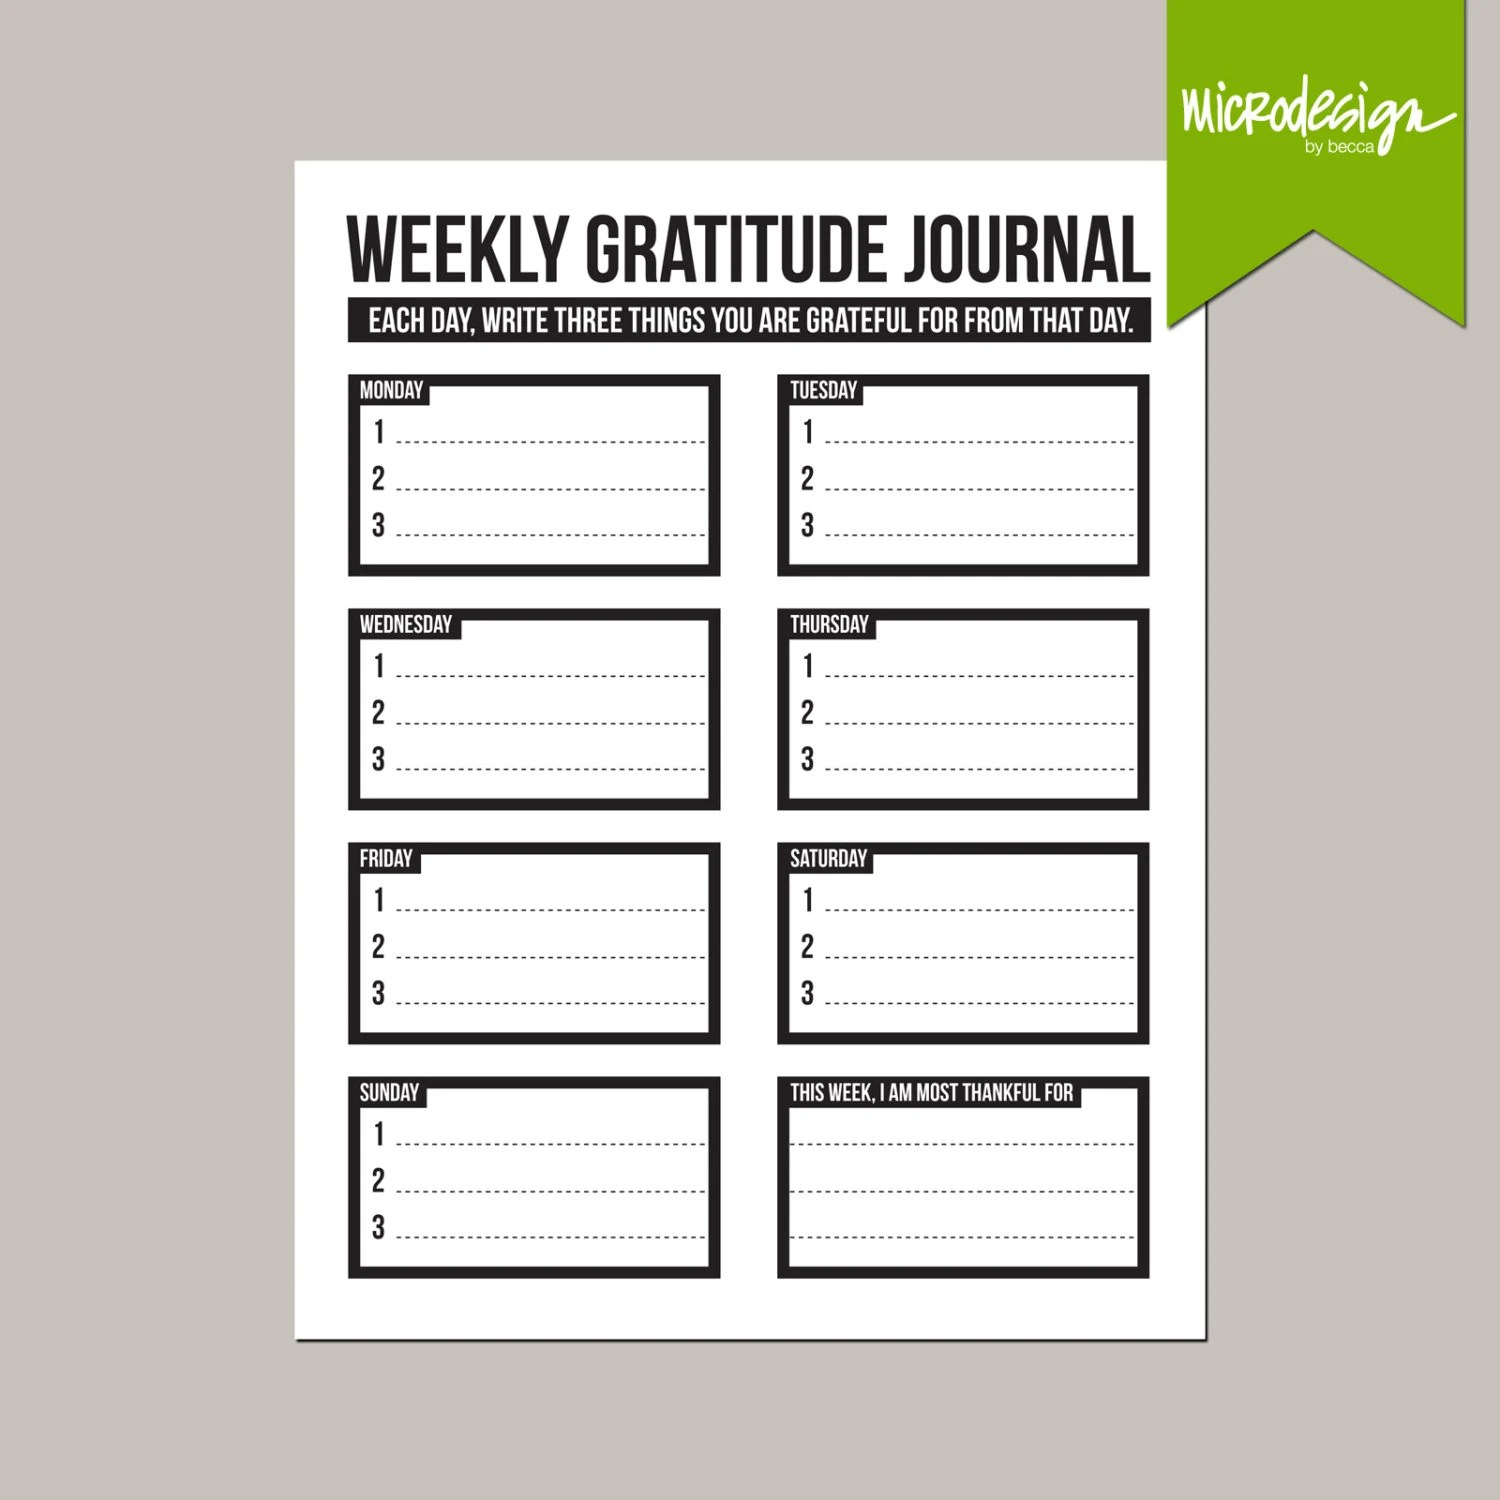 Three Little Things Weekly Gratitude Journal